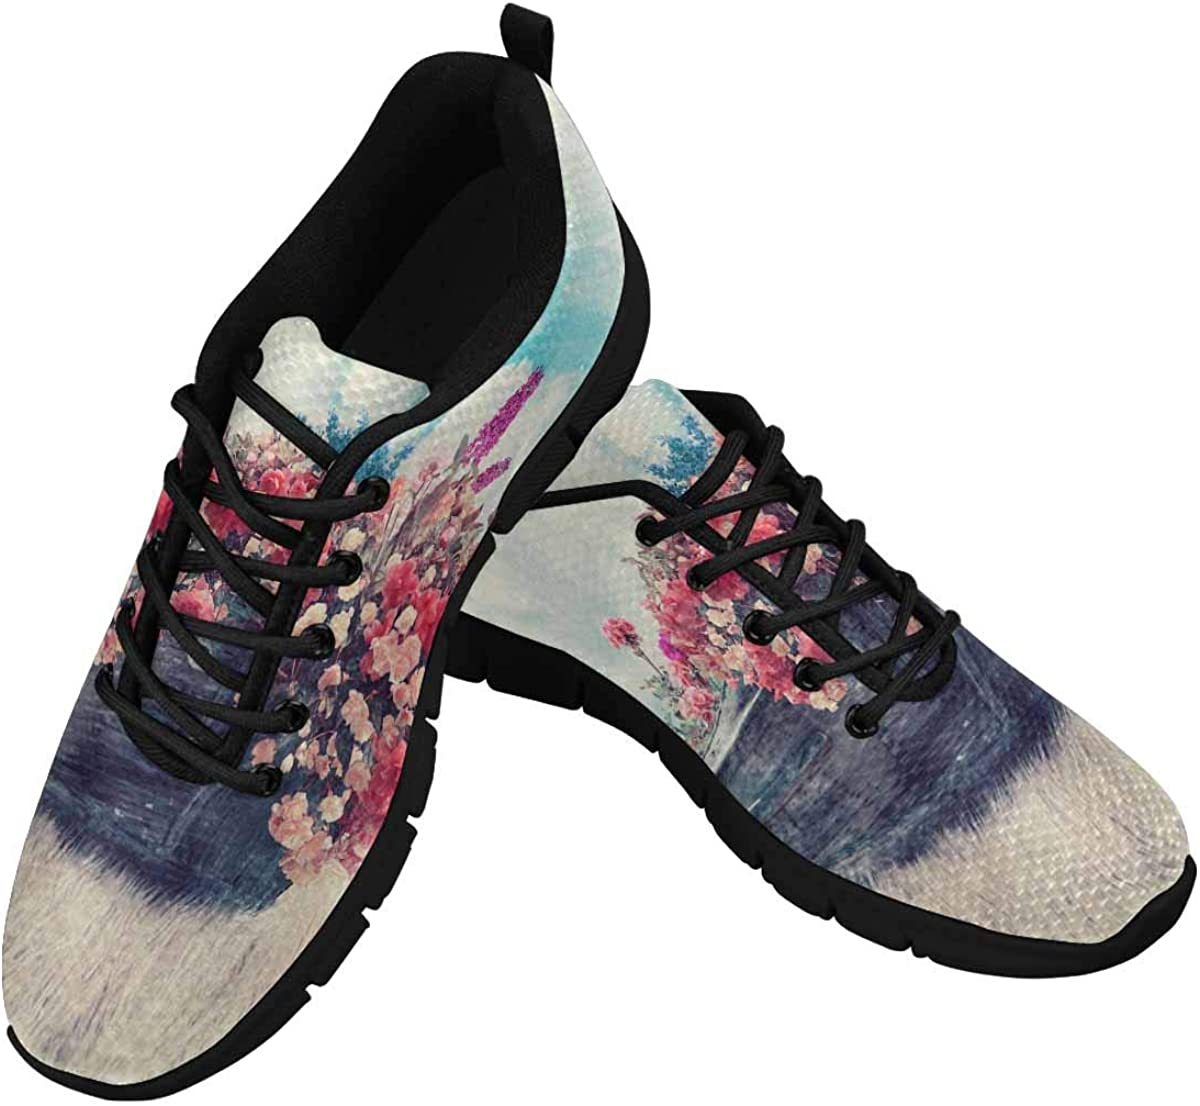 INTERESTPRINT Boat with Flowers Women's Breathable Comfort Mesh Fashion Sneakers